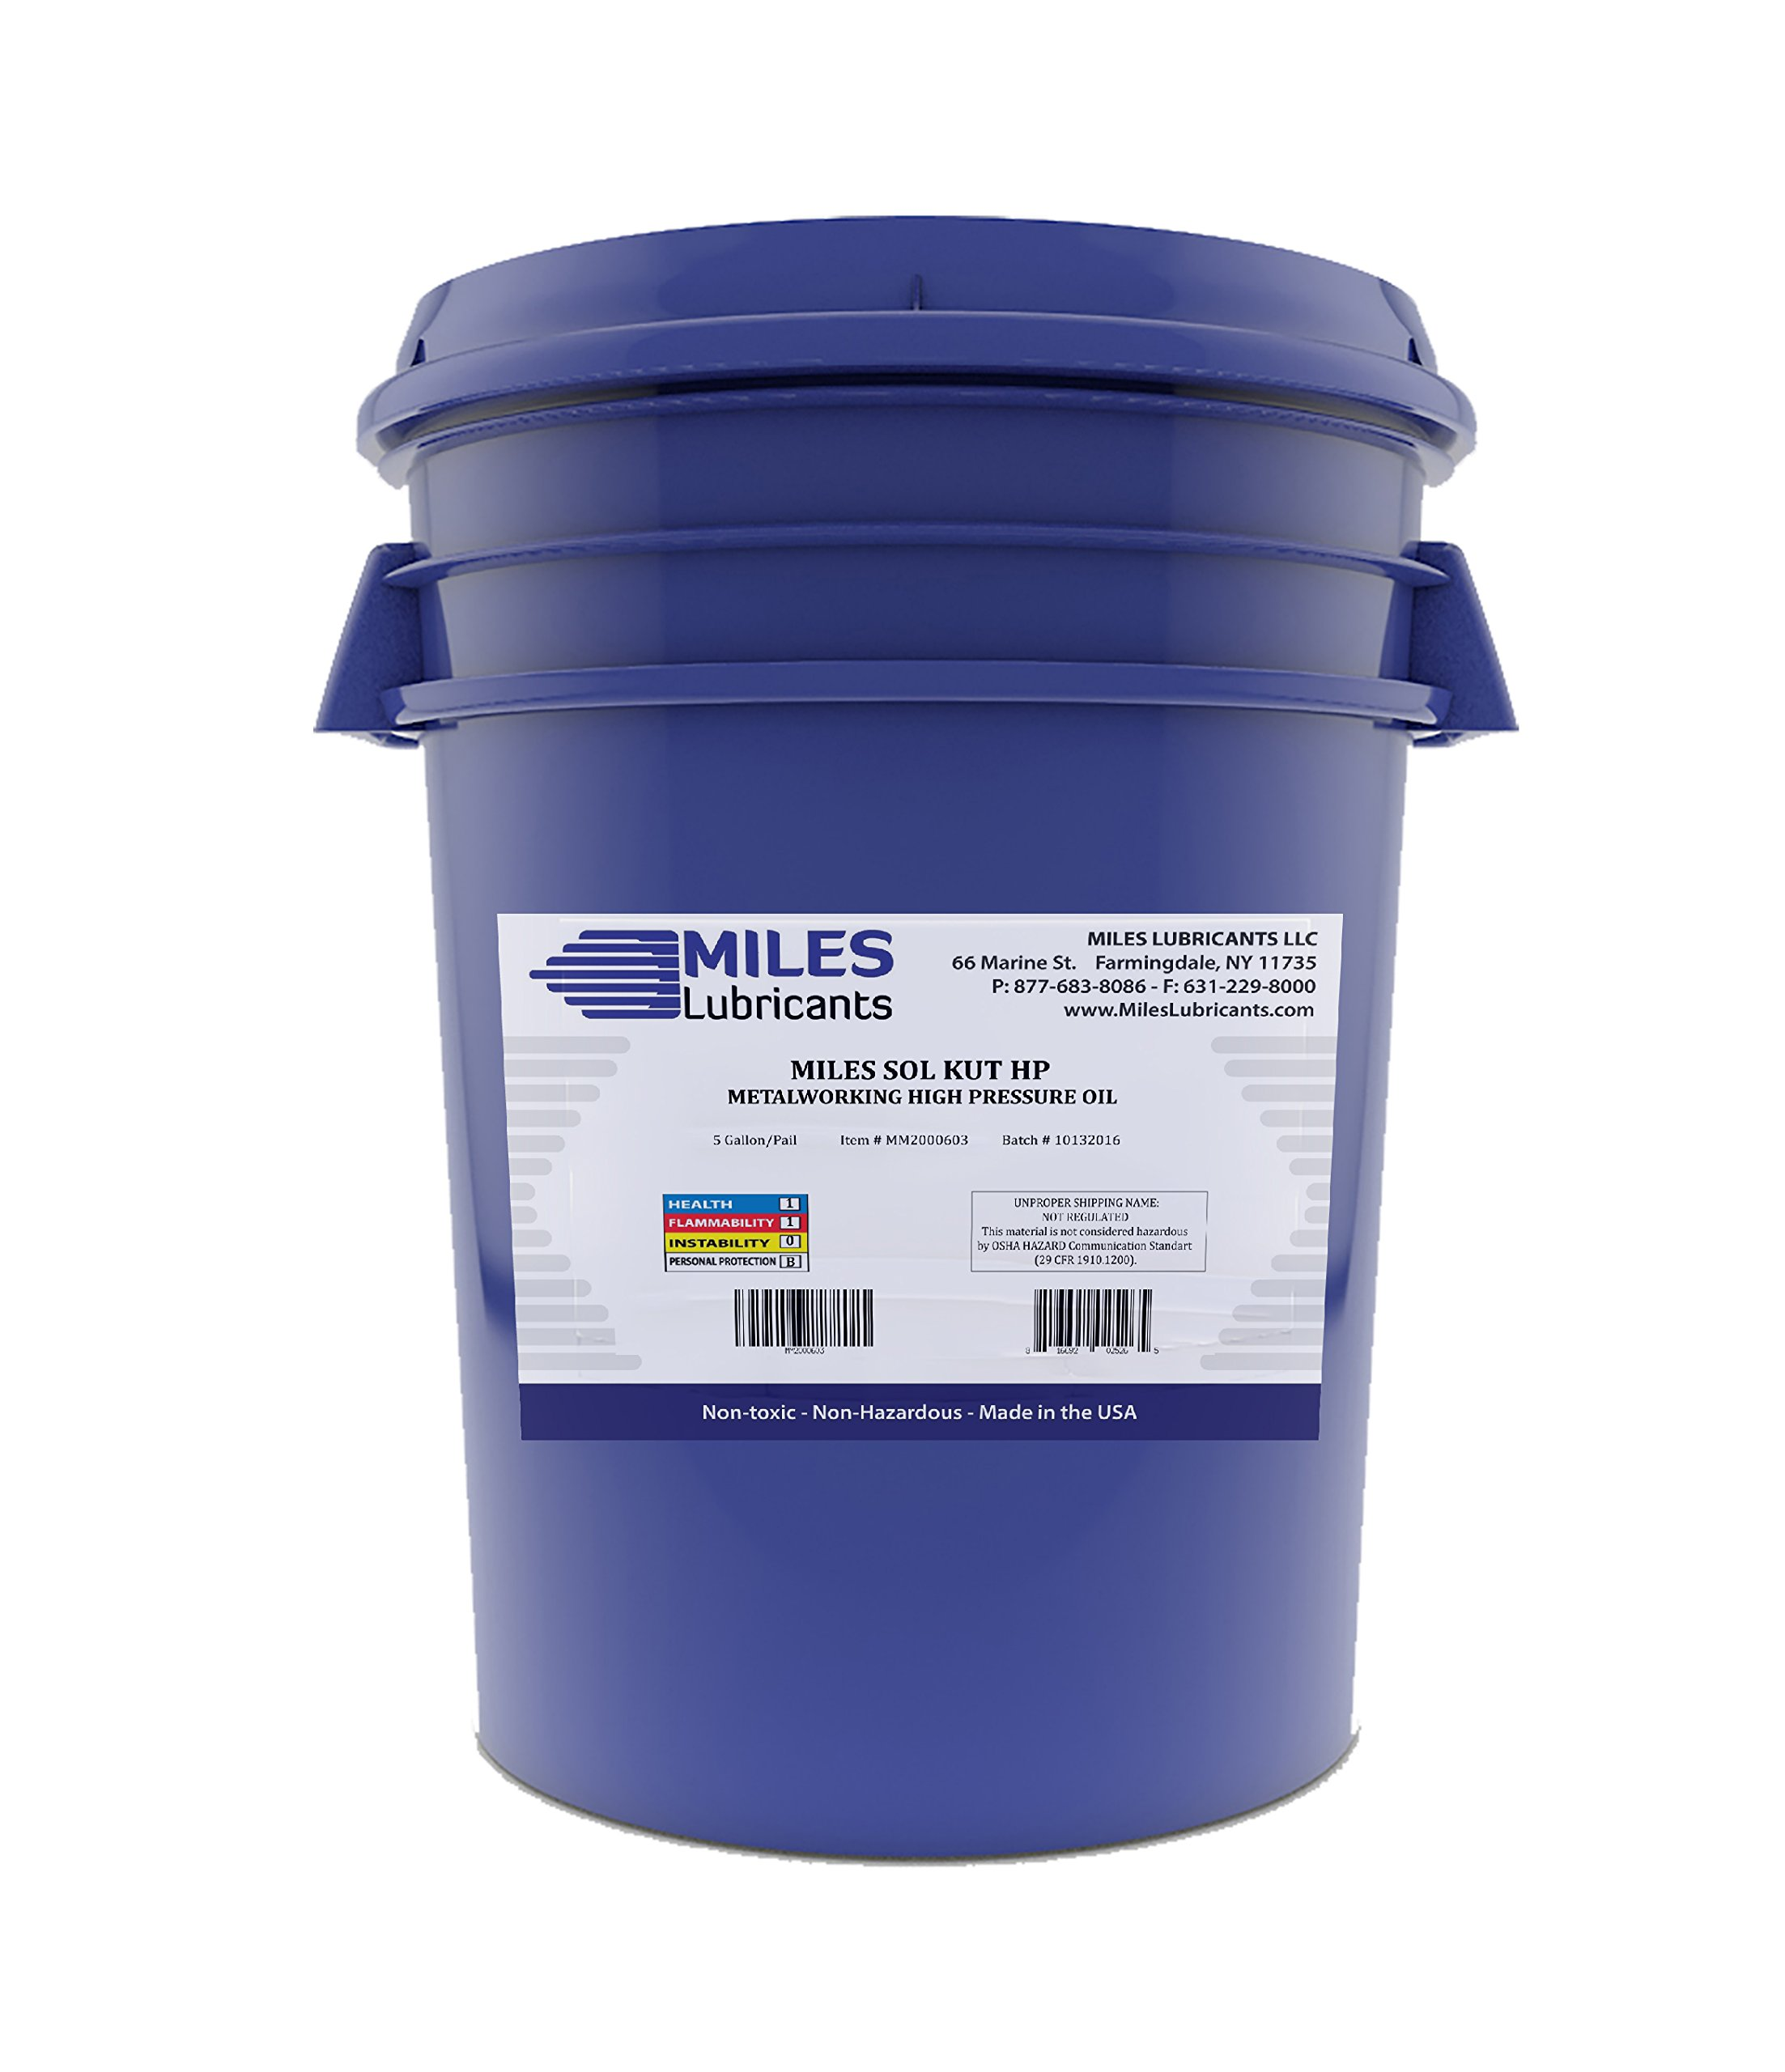 Miles Sol Kut Hp Mineral Based Water Soluble Cutting Fluid 5 Gal. Pail